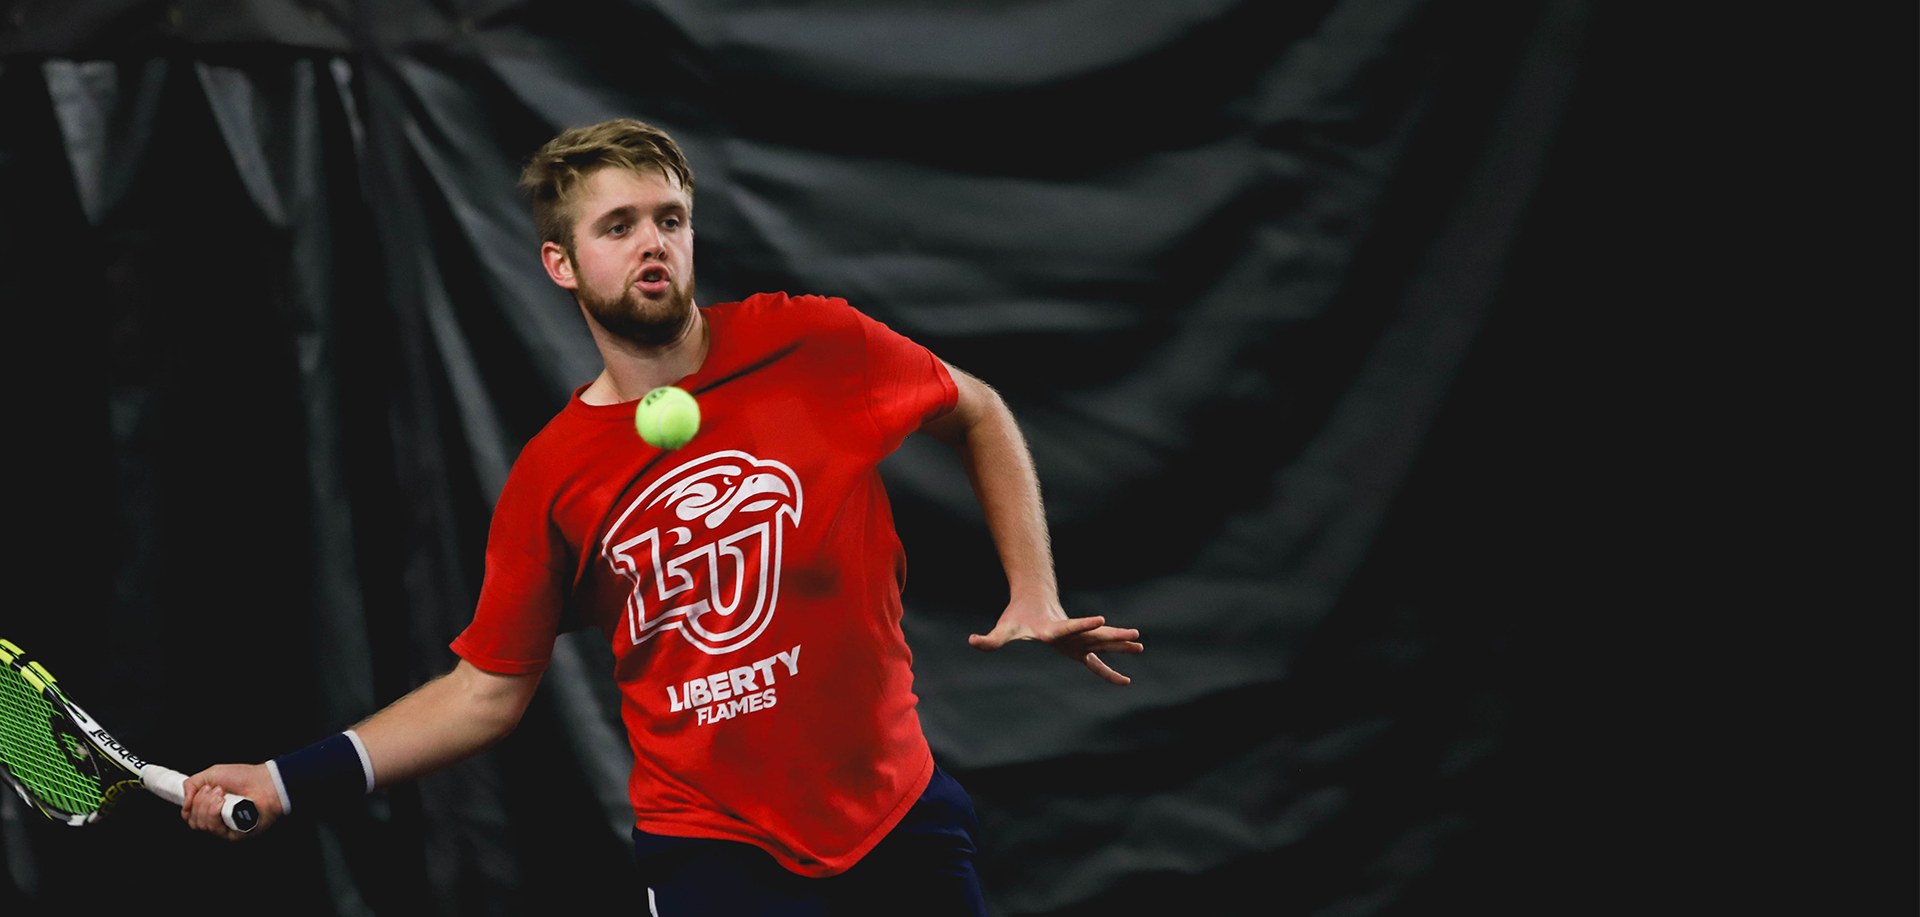 The men's tennis match scheduled for Wednesday at 3 p.m. between Liberty and Longwood has been postponed and moved to Thursday at the same time.